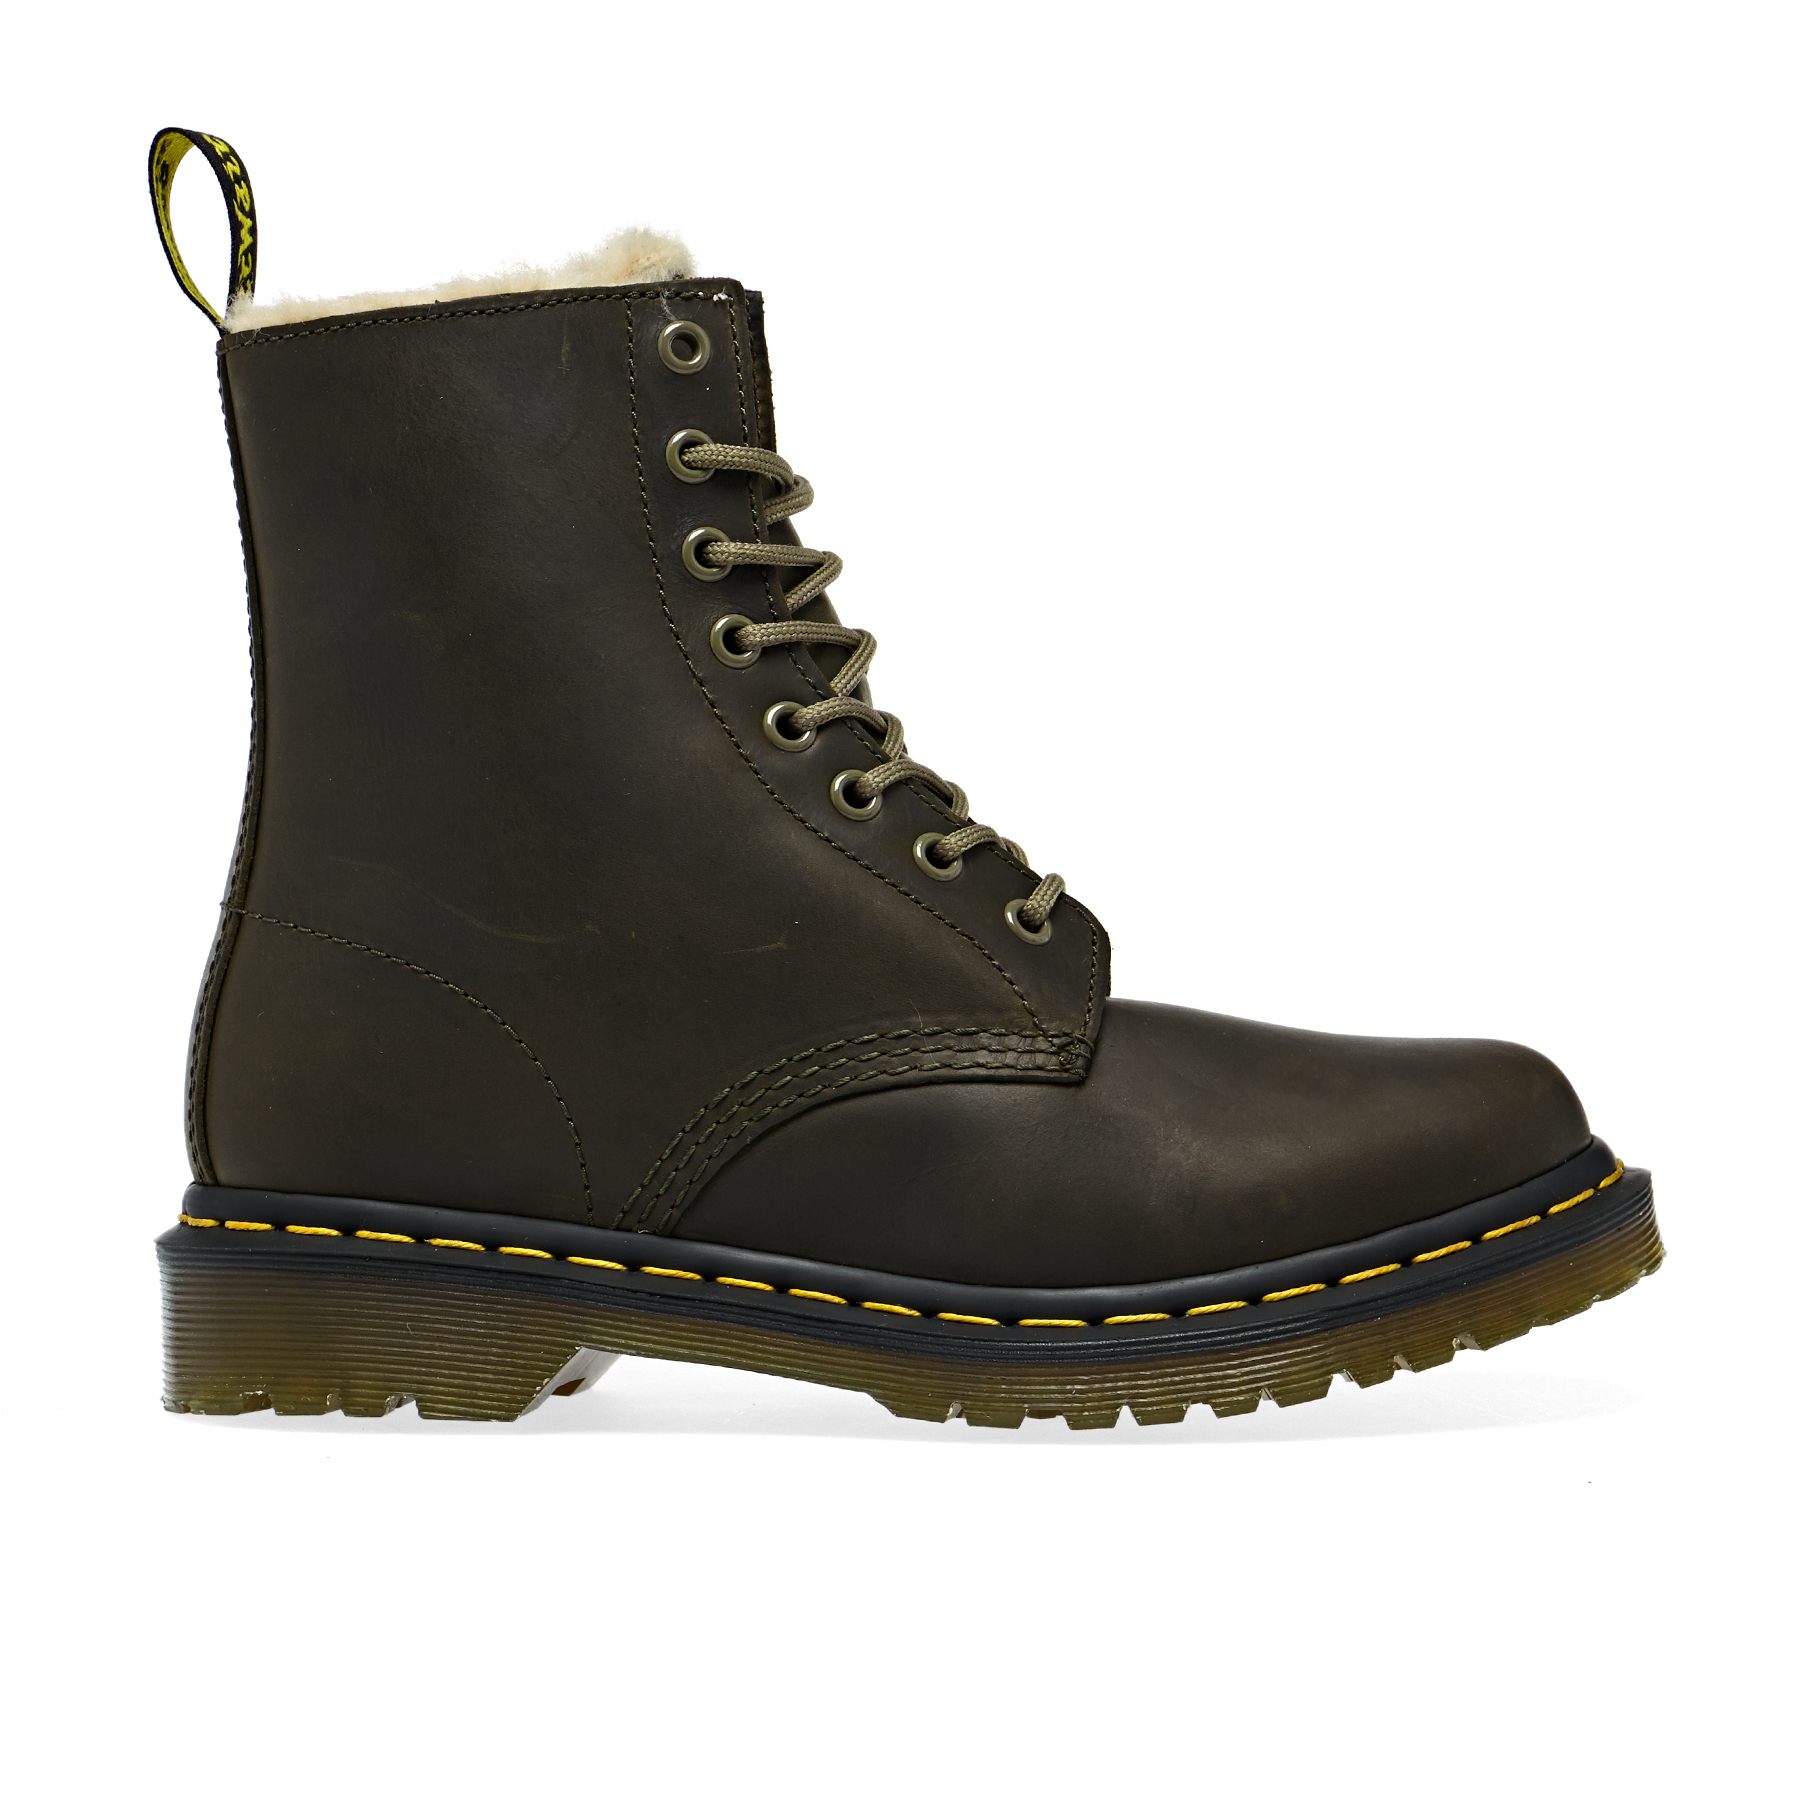 Dr Martens 1460 Serena Dms Stiefel Olive Wyoming | Country